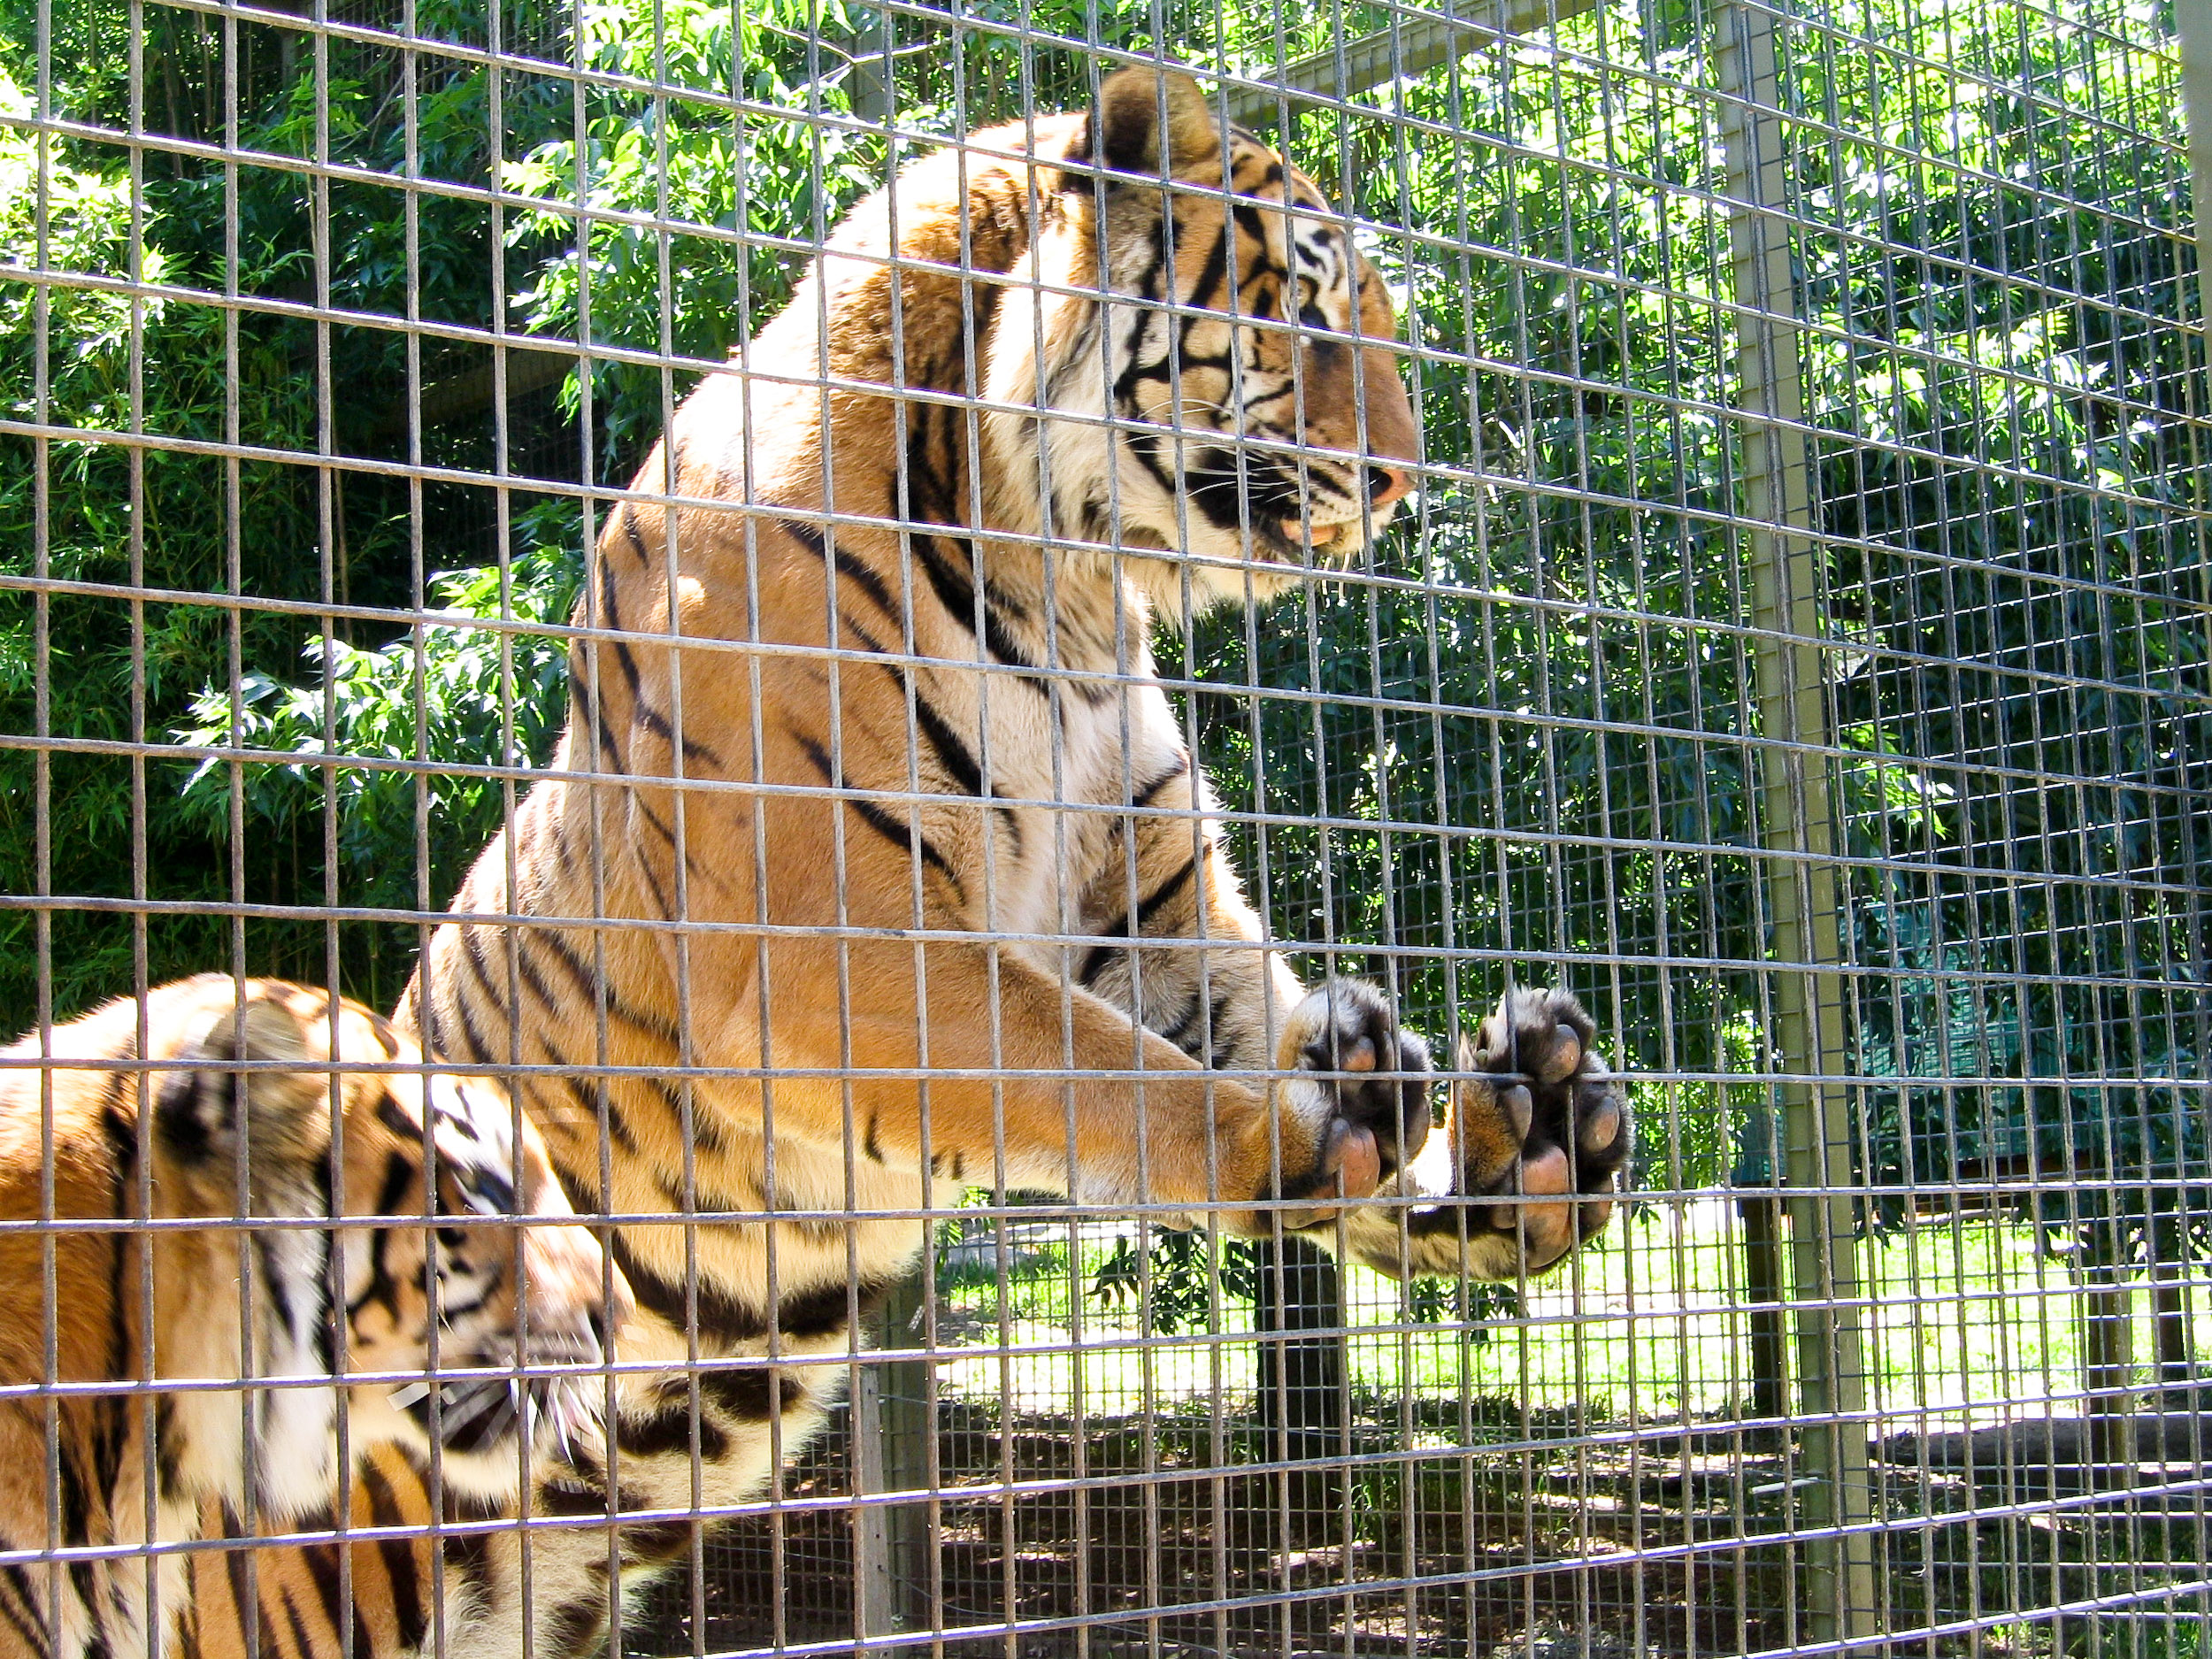 wild animals should not be kept in zoos